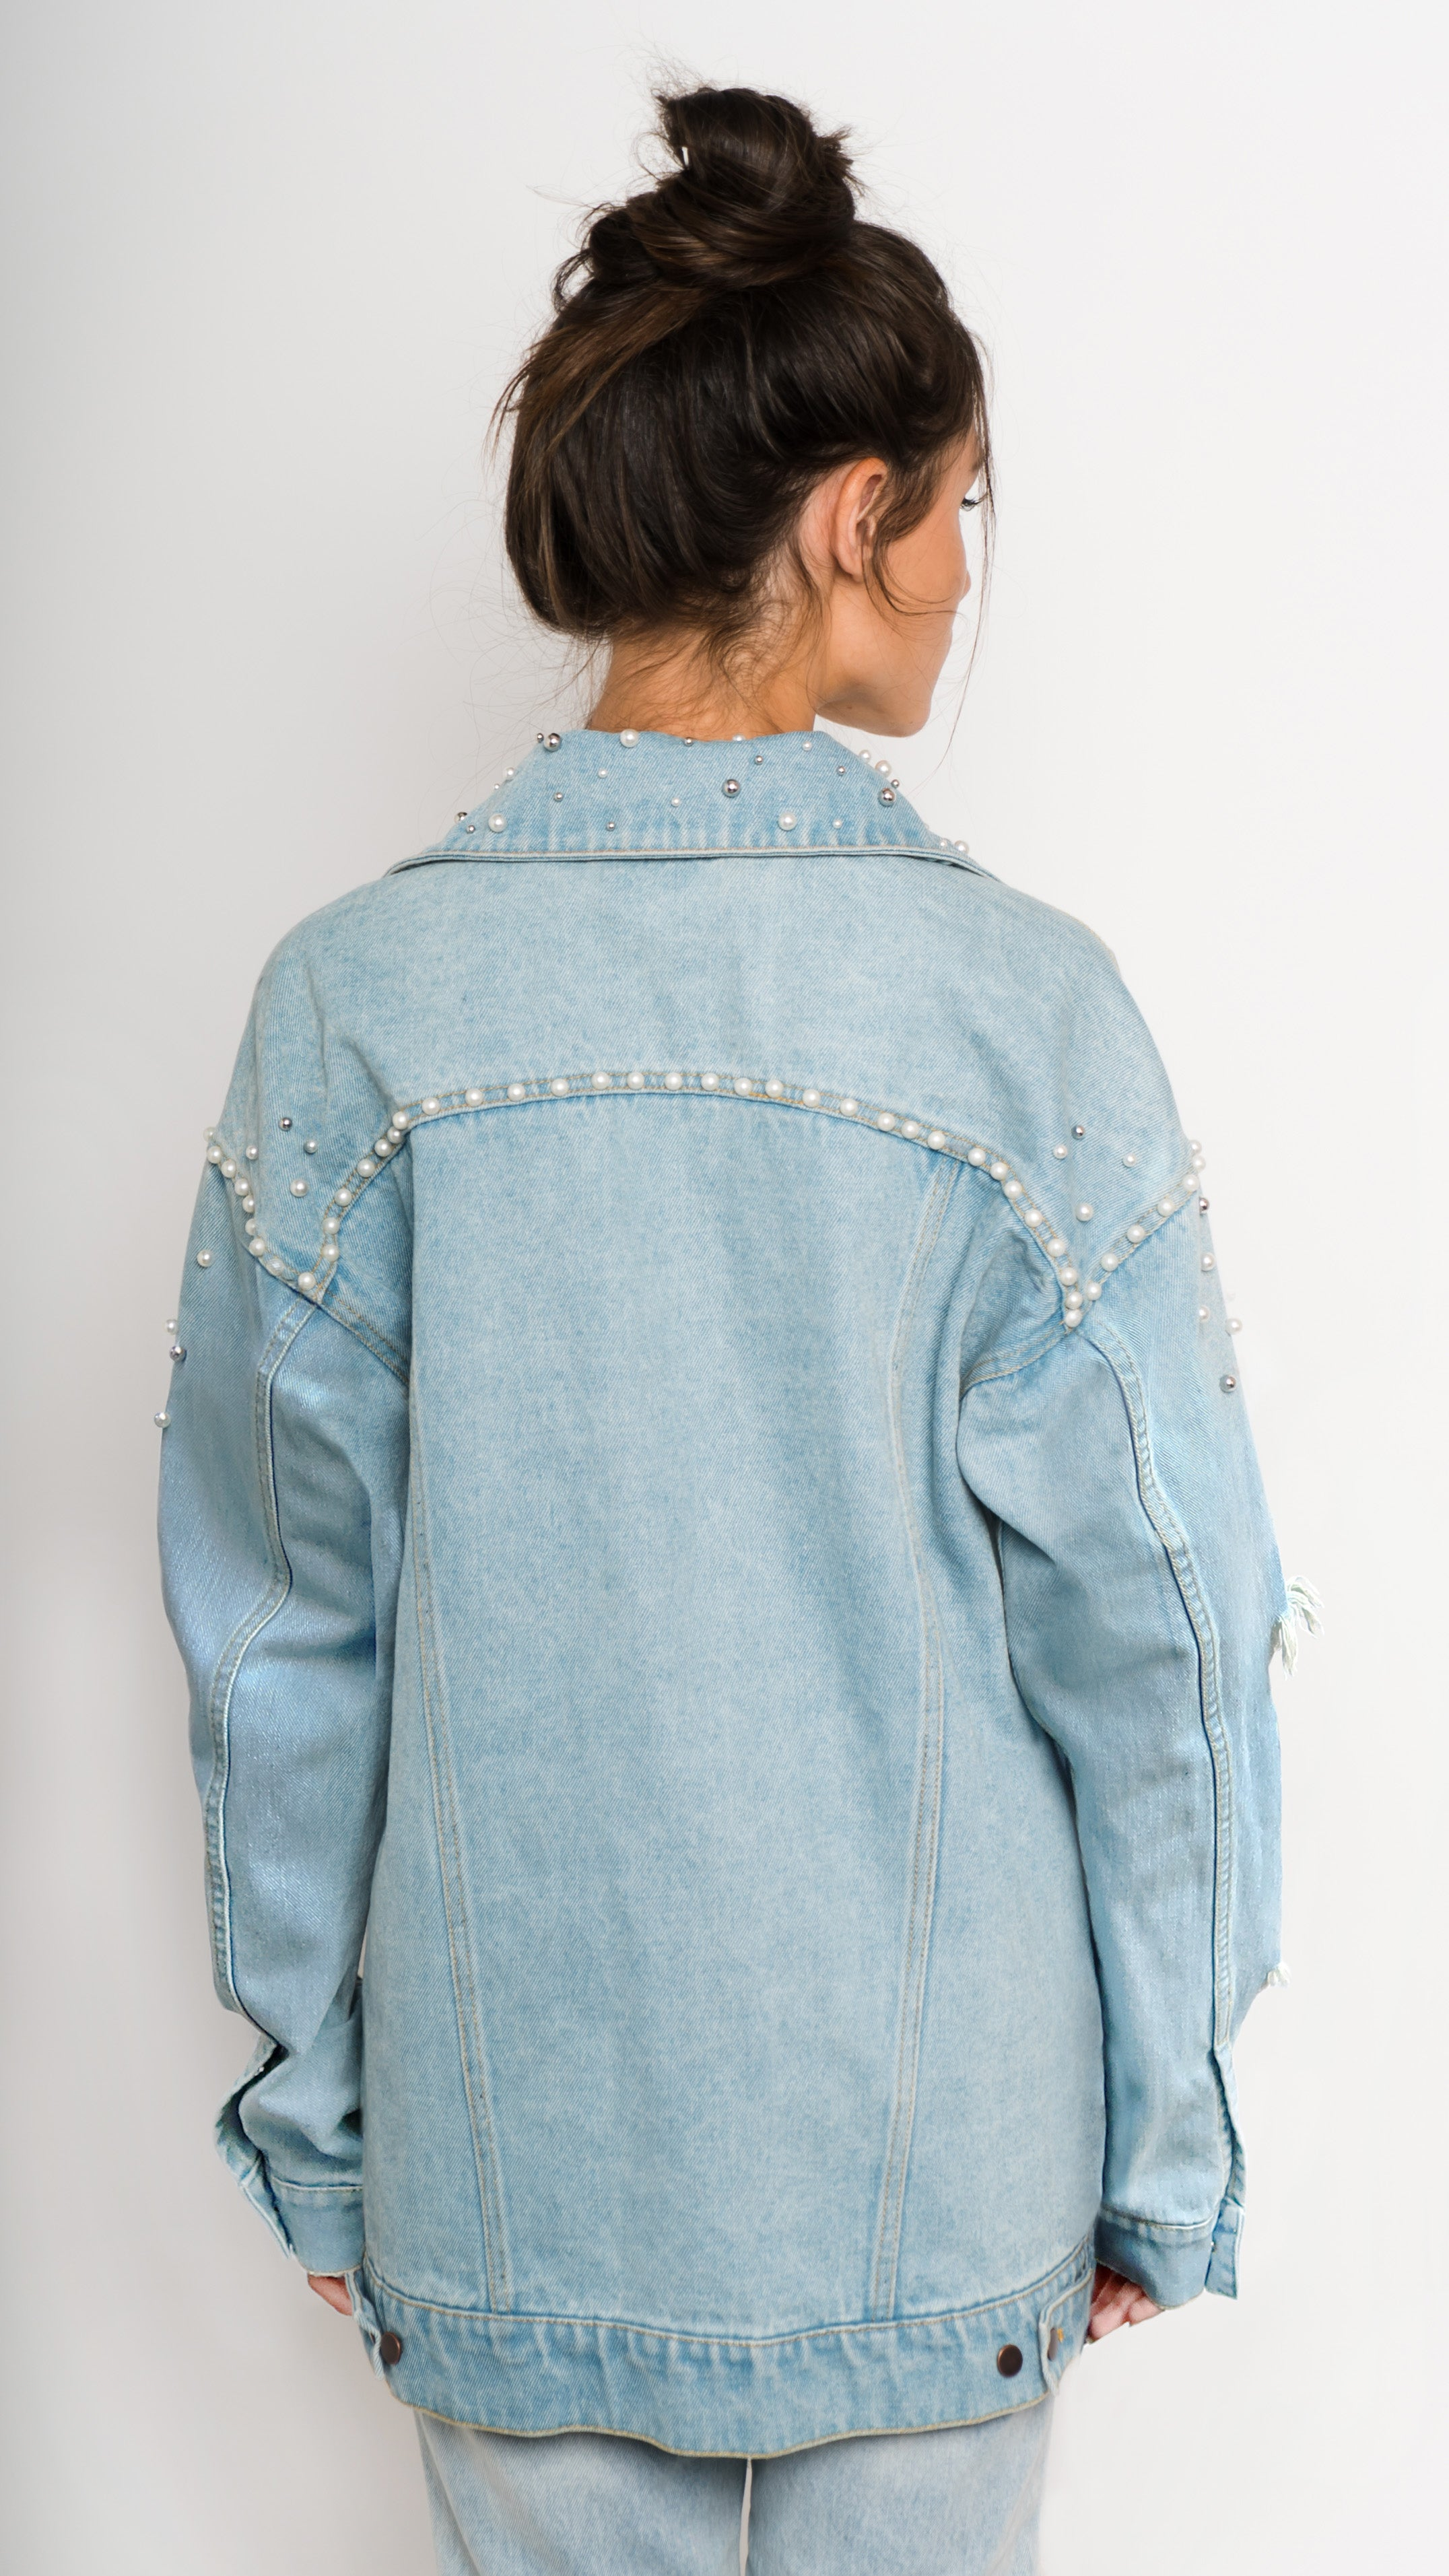 Pearl Studded Distressed Denim Jacket Women S Type Alpha